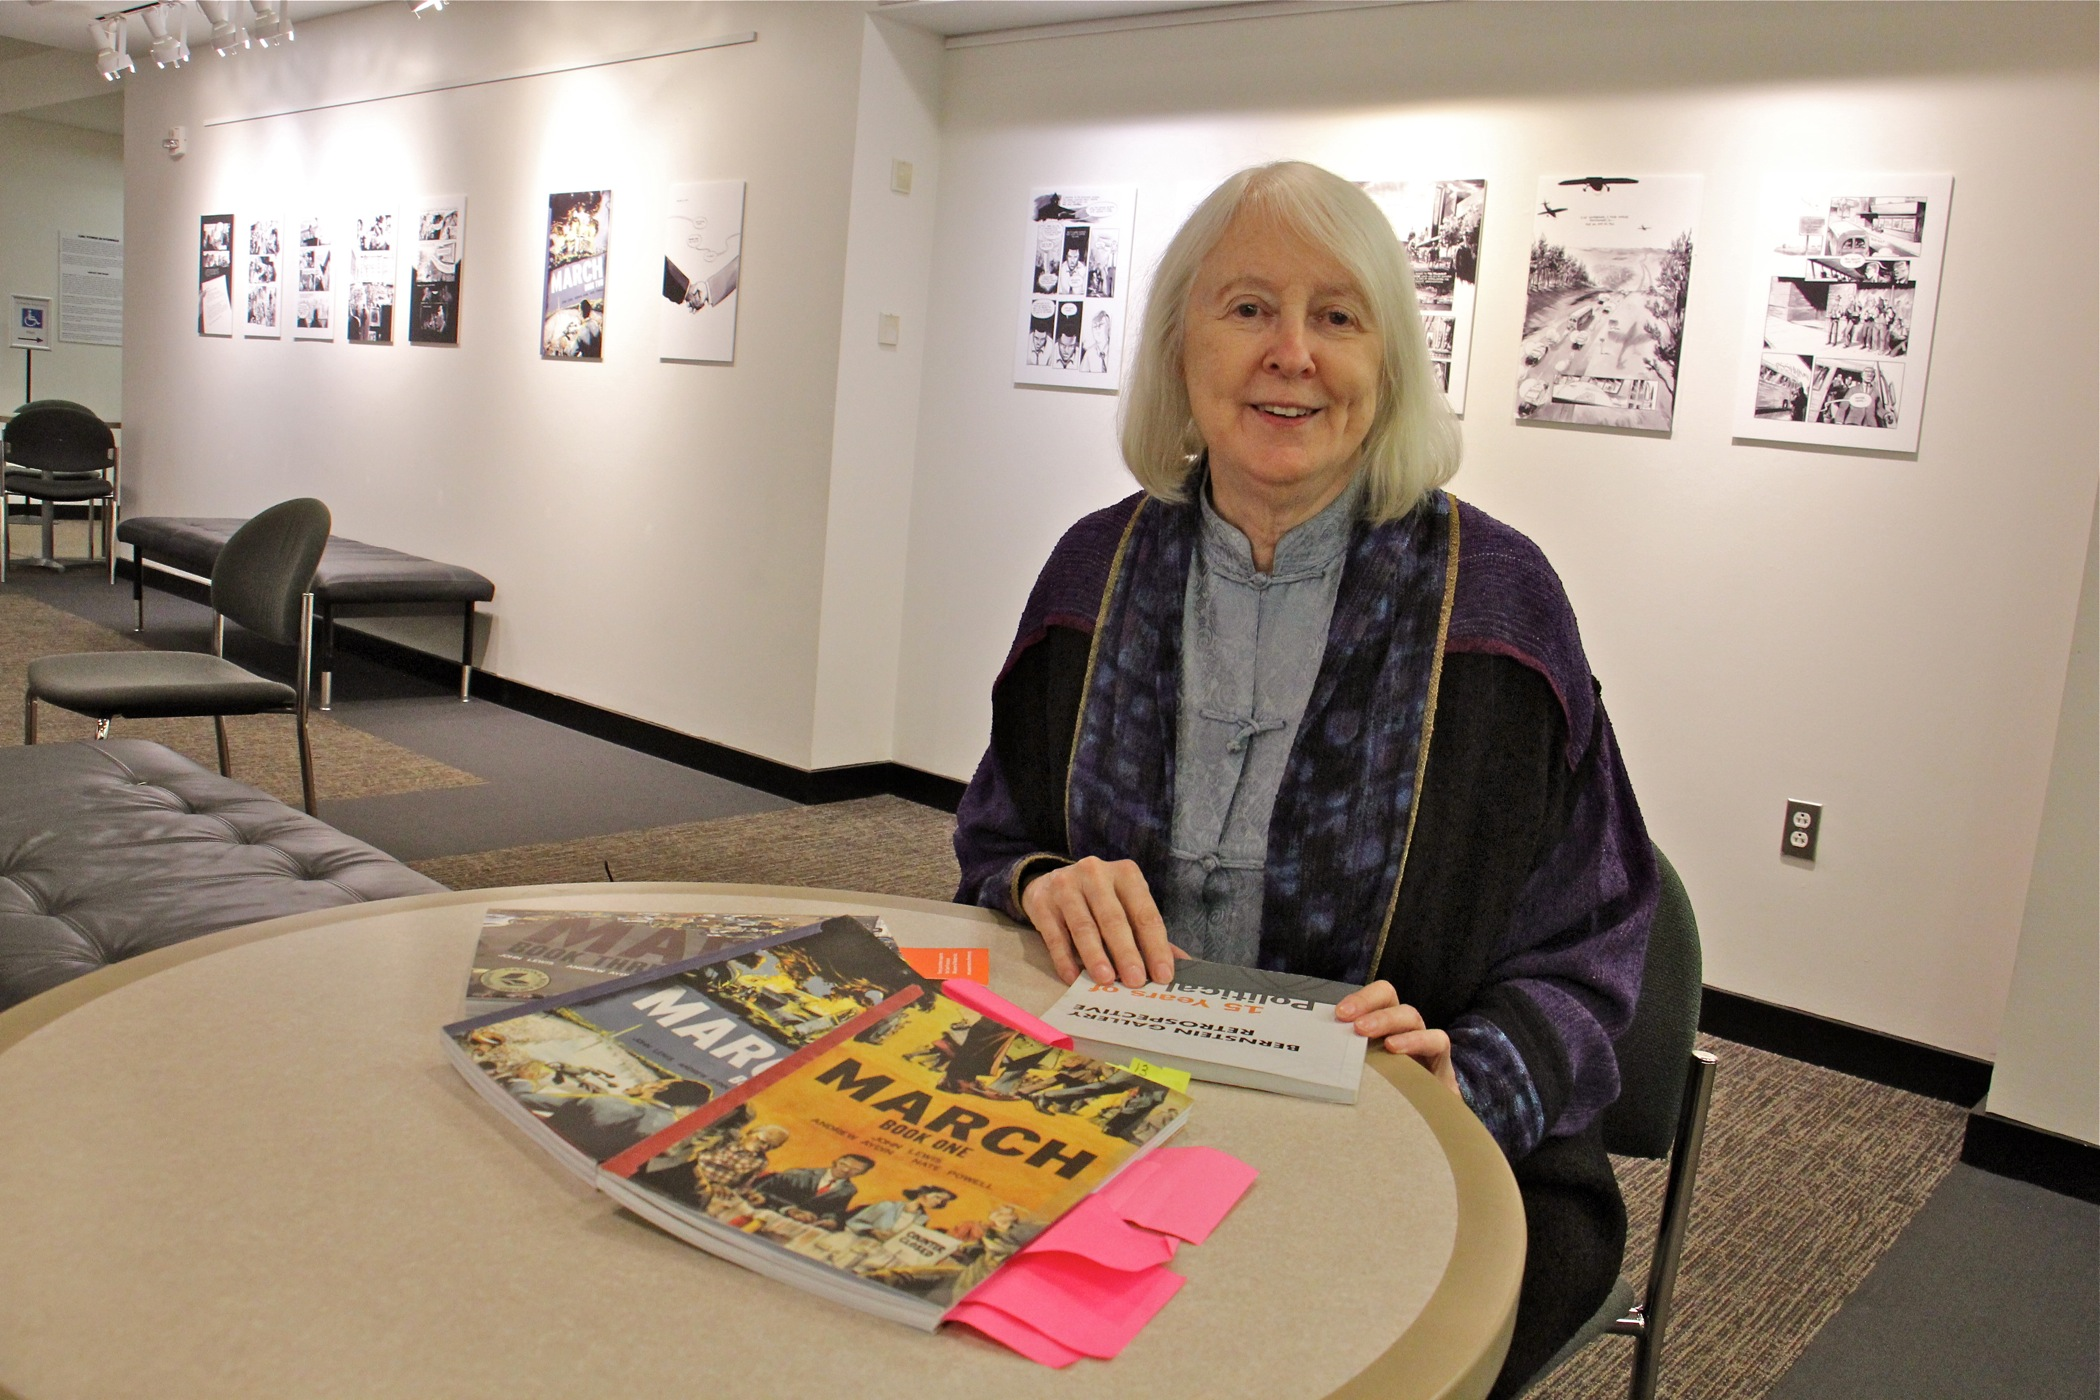 Mary Oestereicher Hamill, co-director of the Bernstein Gallery at Princeton University, lays out the graphic novels featured in the exhibit.